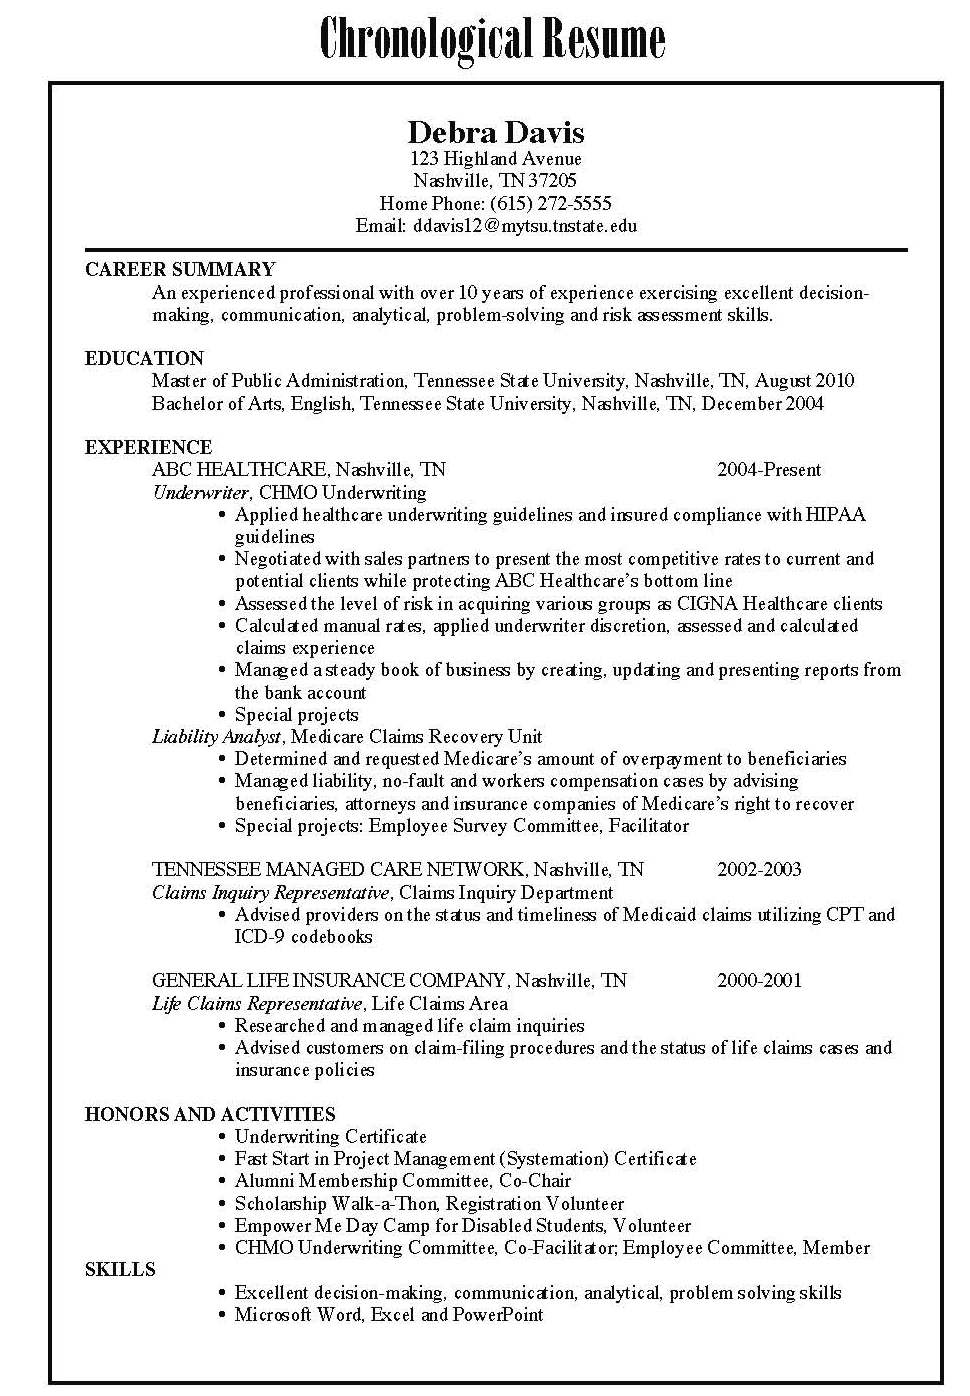 resume01 Targeted Resume Format on tongue quill, for medical trainer example, case manager, template district manager, pro cons, professional examples, samples for college student, for registered nurse, build type, subtitles or sections for, template microsoft works,